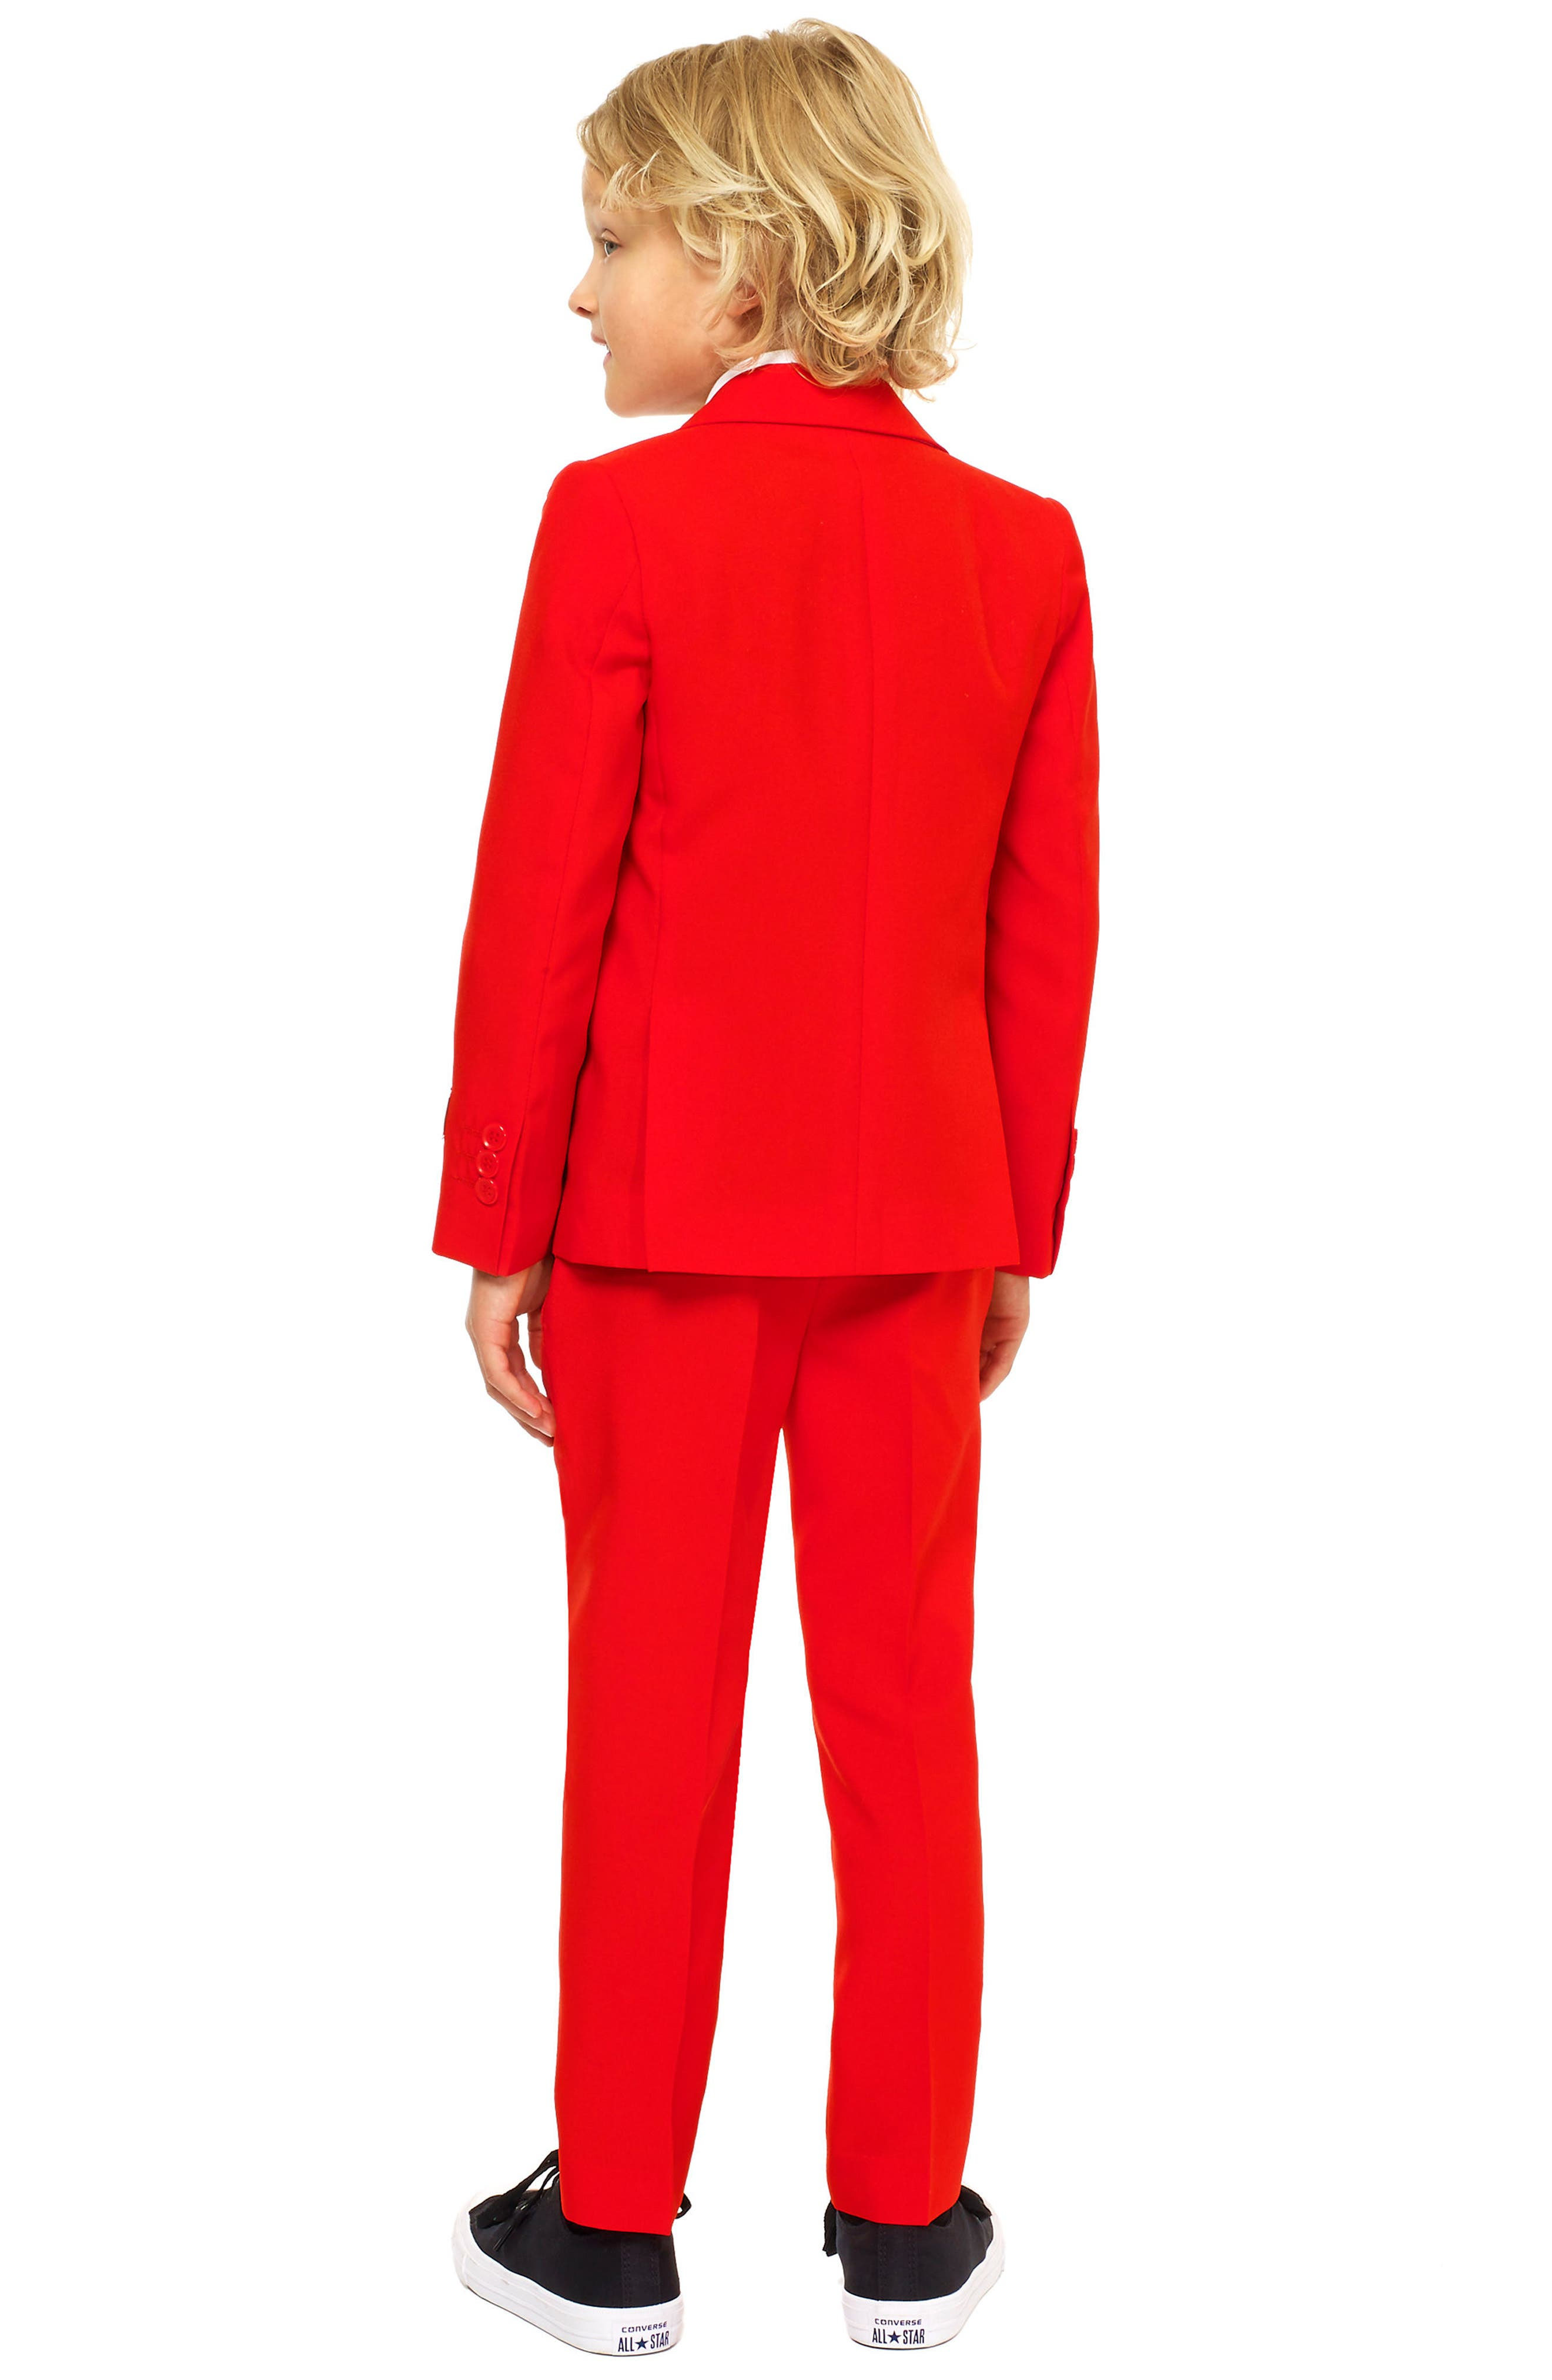 Oppo Red Devil Two-Piece Suit with Tie,                             Alternate thumbnail 2, color,                             Red